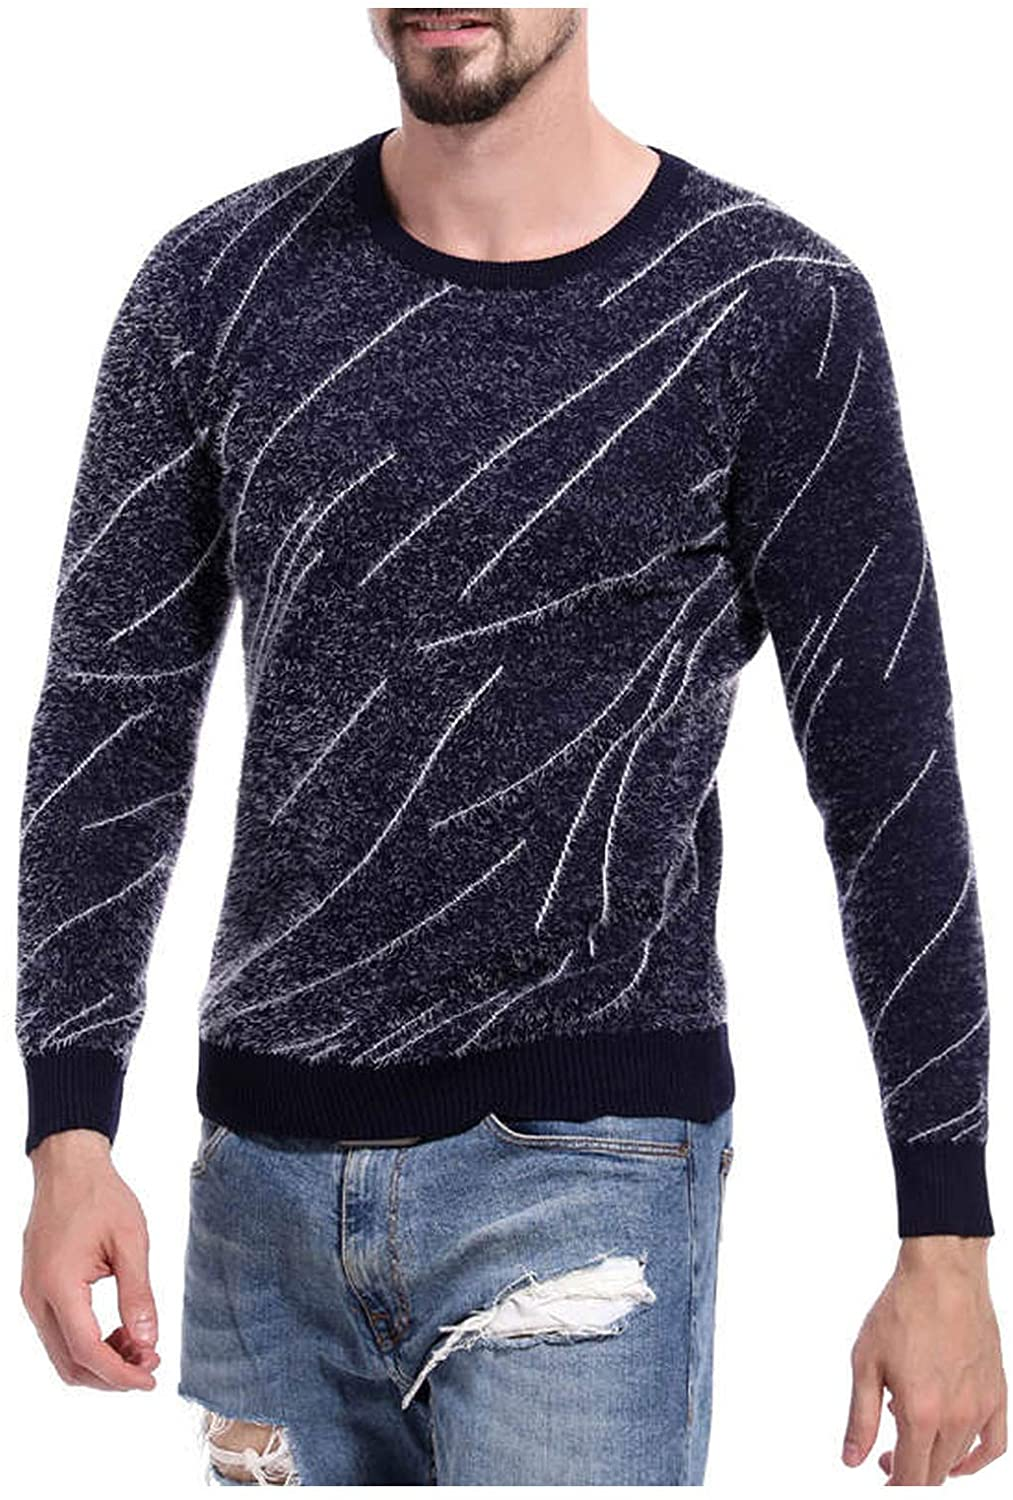 Always For Me Cashmere Wool Sweater Men Autumn Winter Slim Fit Pullovers V Neck Pull Homme Christmas Sweaters